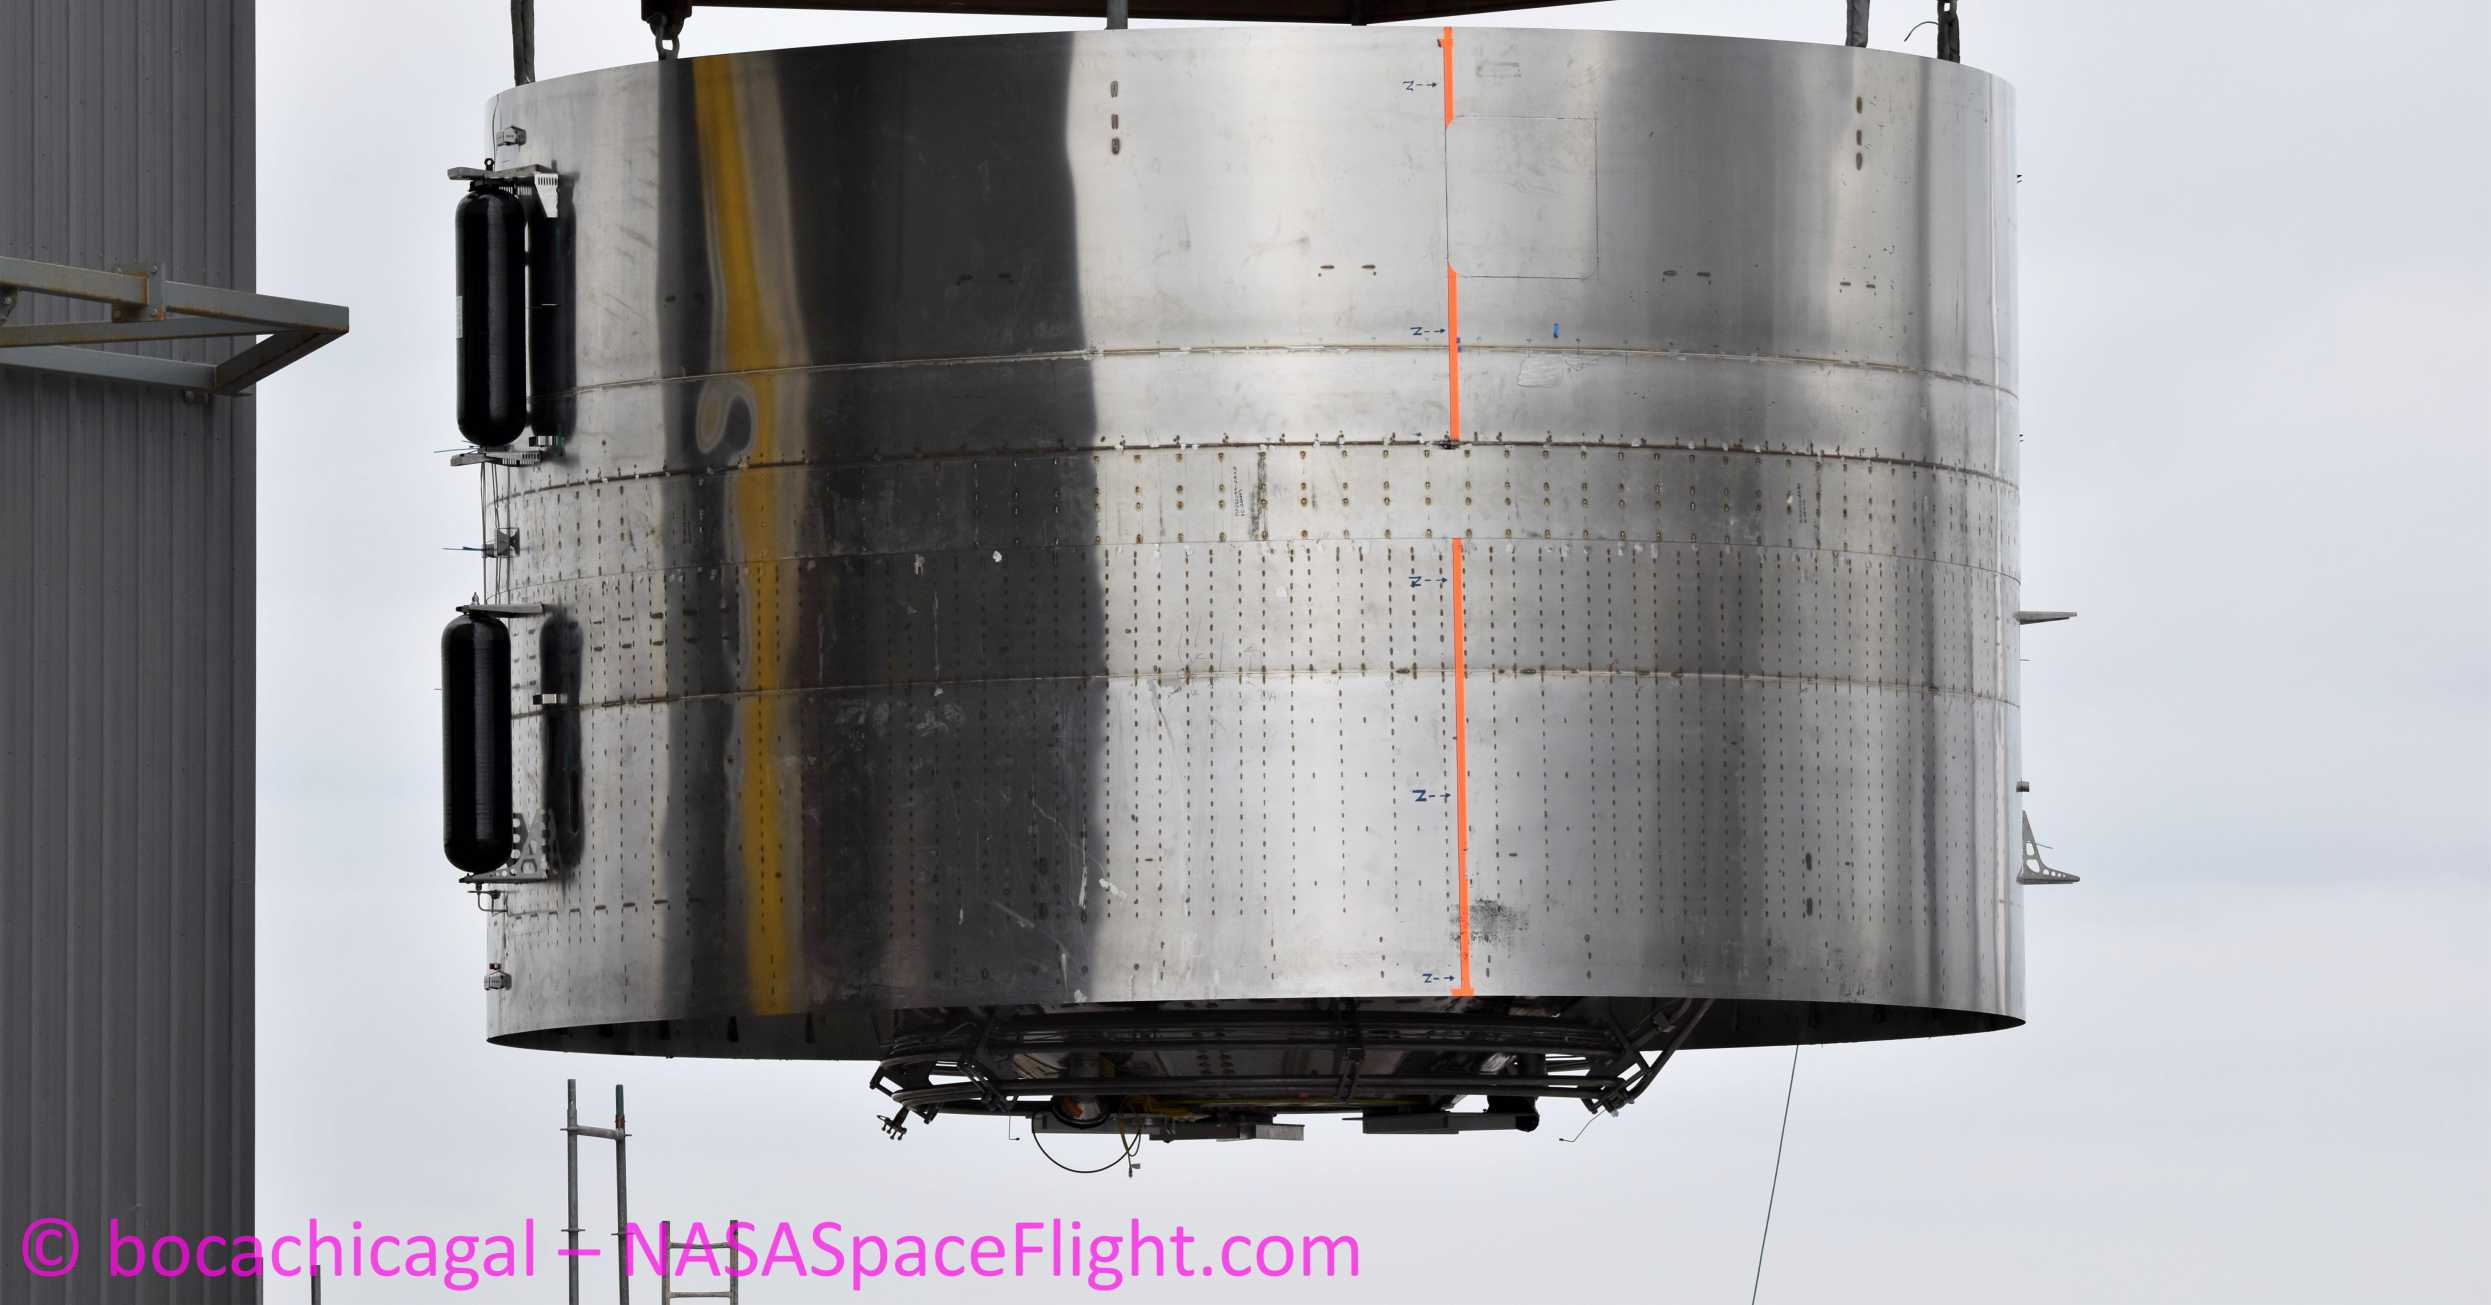 Starship Boca Chica 041520 (NASASpaceflight – bocachicagal) SN4 engine section move 8 crop (c)